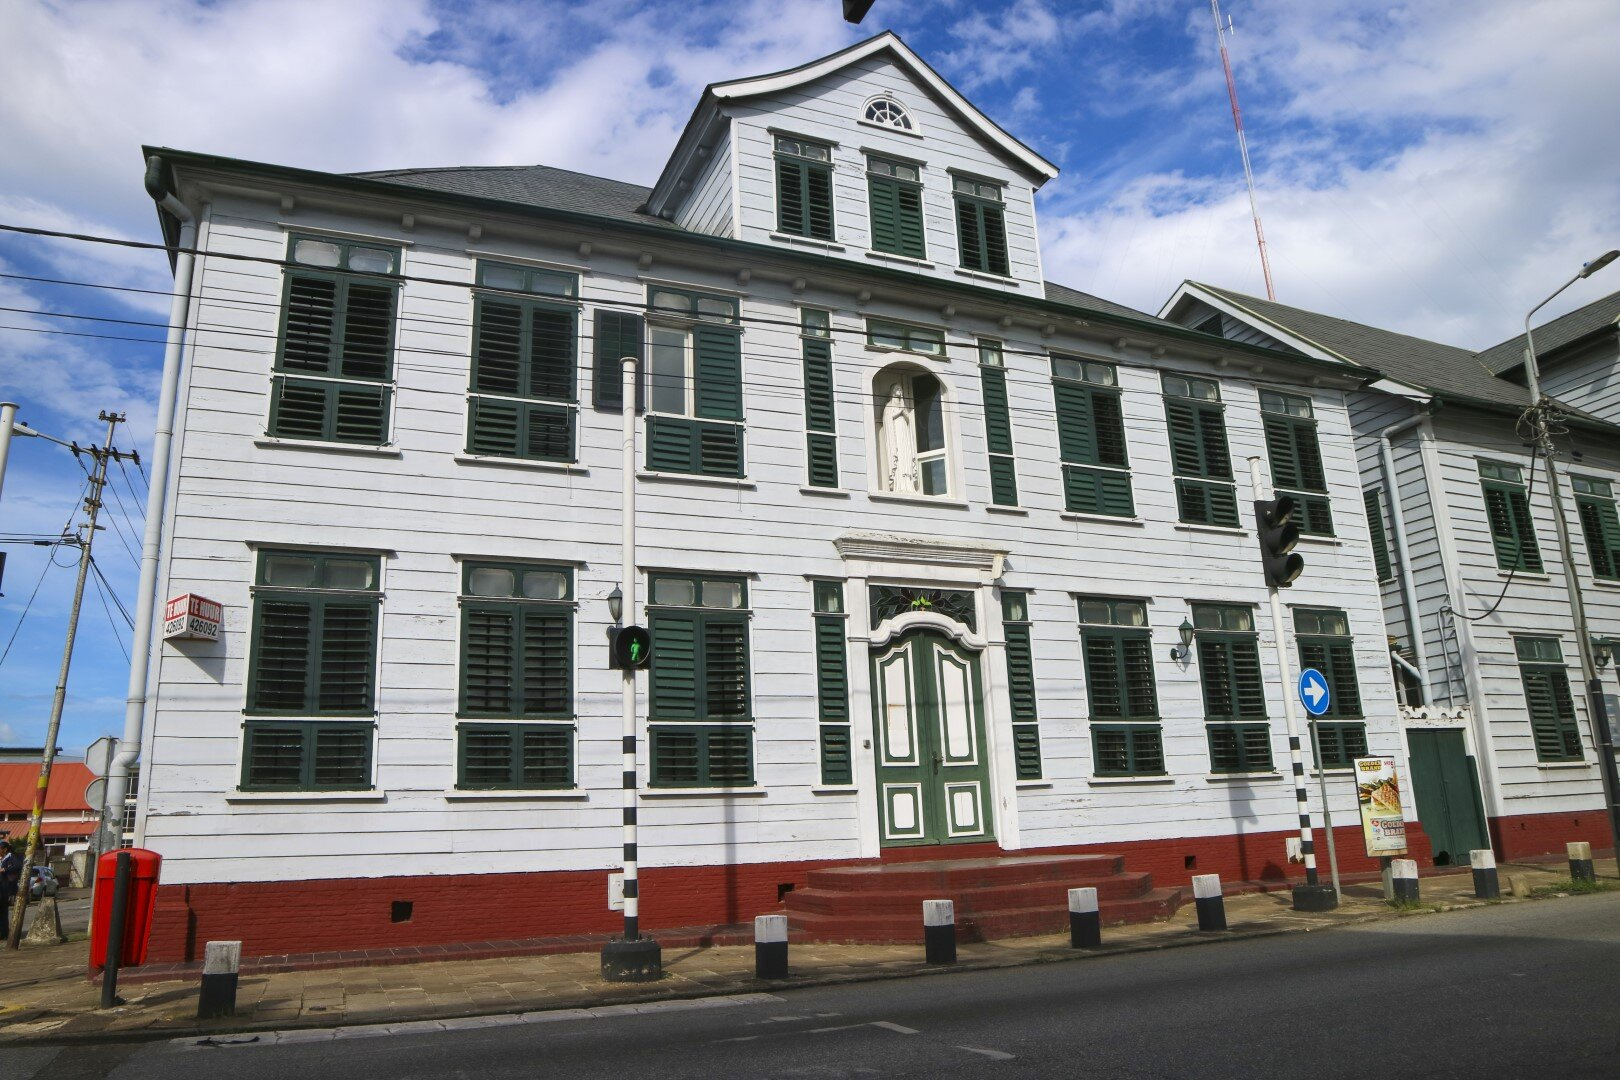 Henck Arronstraat 18 Centrum Paramaribo Surgoed Makelaardij NV Huurpand HZ0310B6 1 - Henck Arronstraat 18